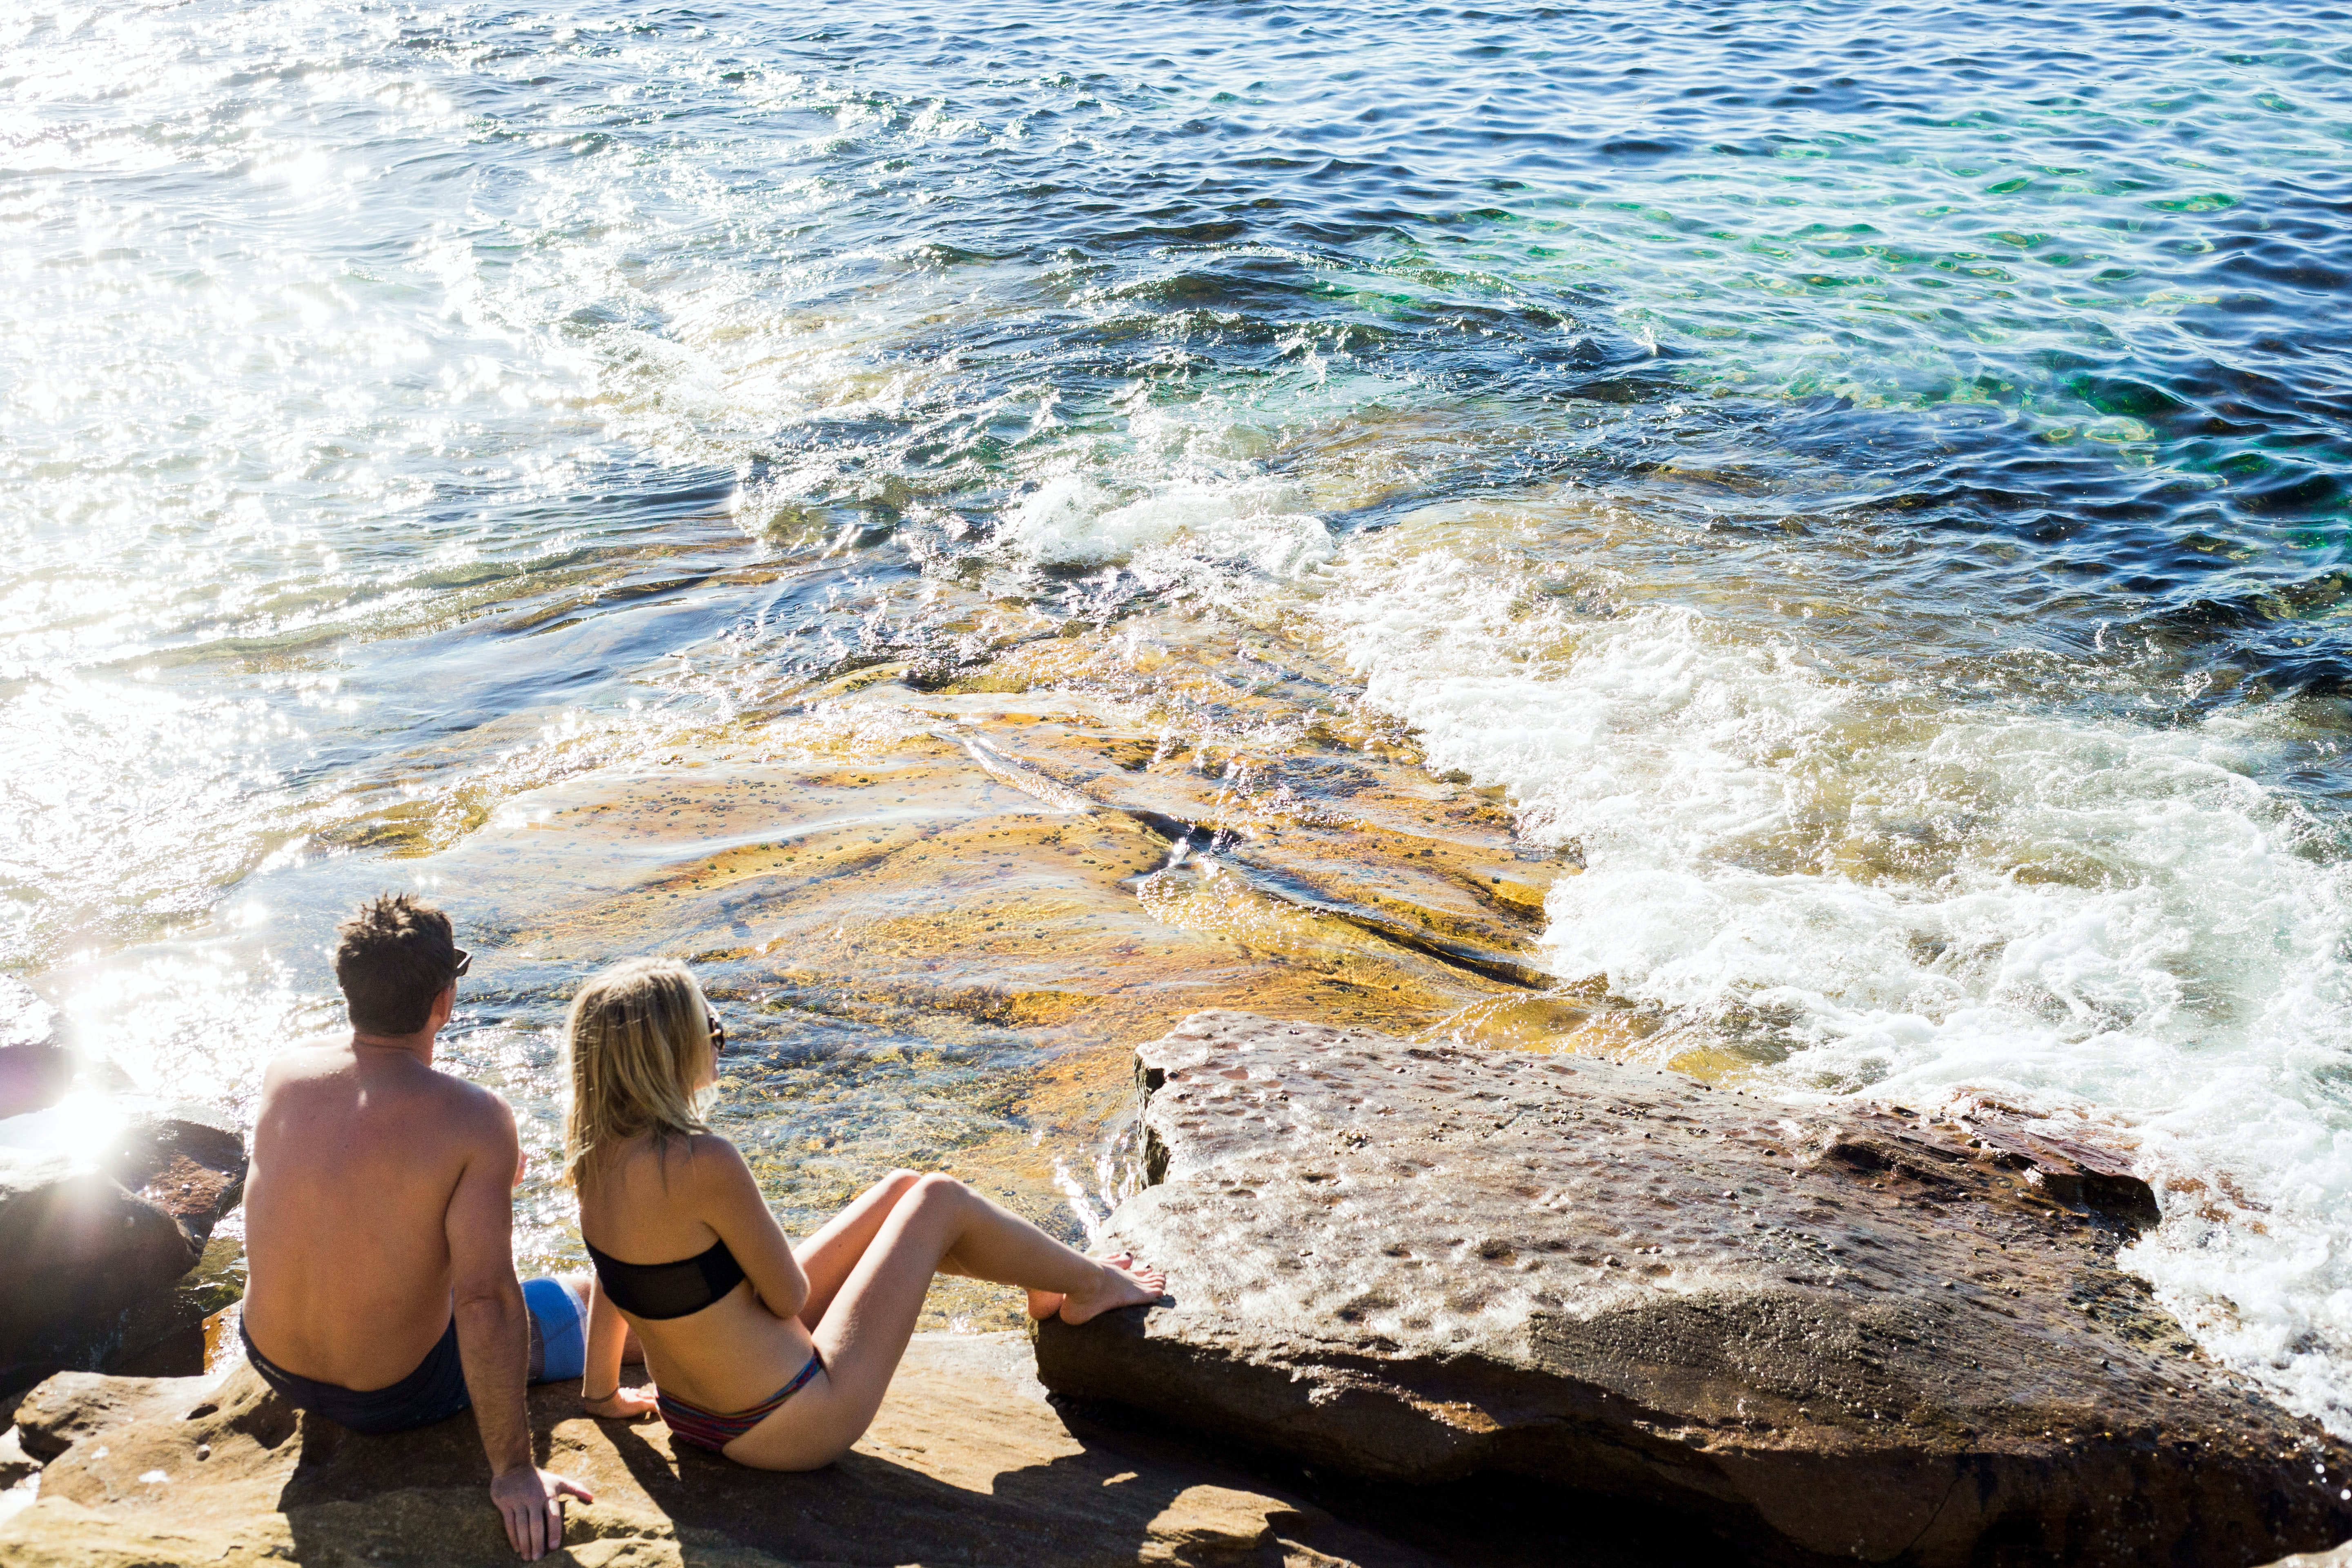 man and woman sitting next to each other in beach